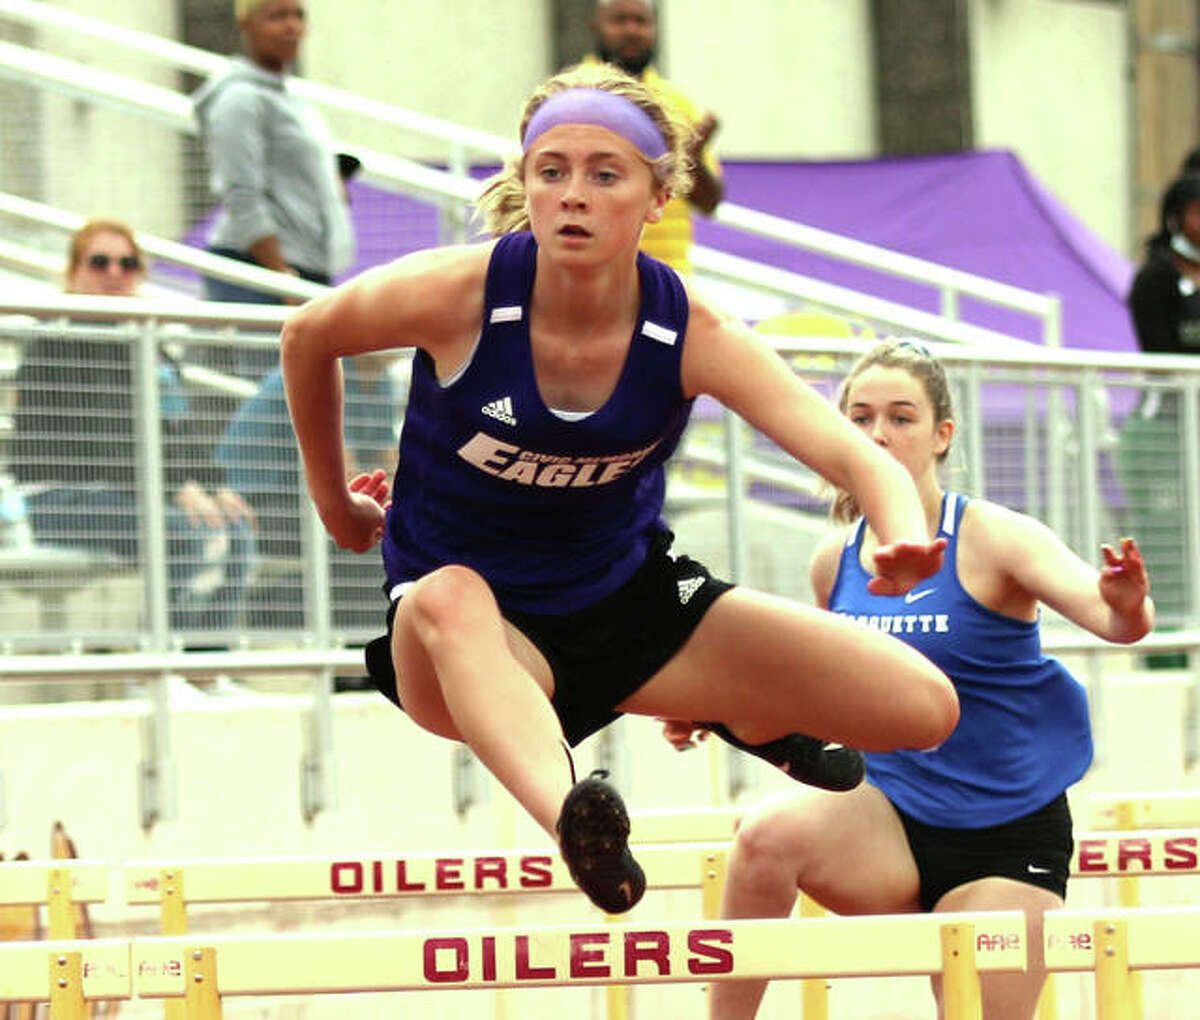 CM sophomore Bella Dugger wins the 100-meter hurdles at the Madison County Meet on May 17 in Wood River. Dugger makes her first state appearance in the event Friday in Charleston.